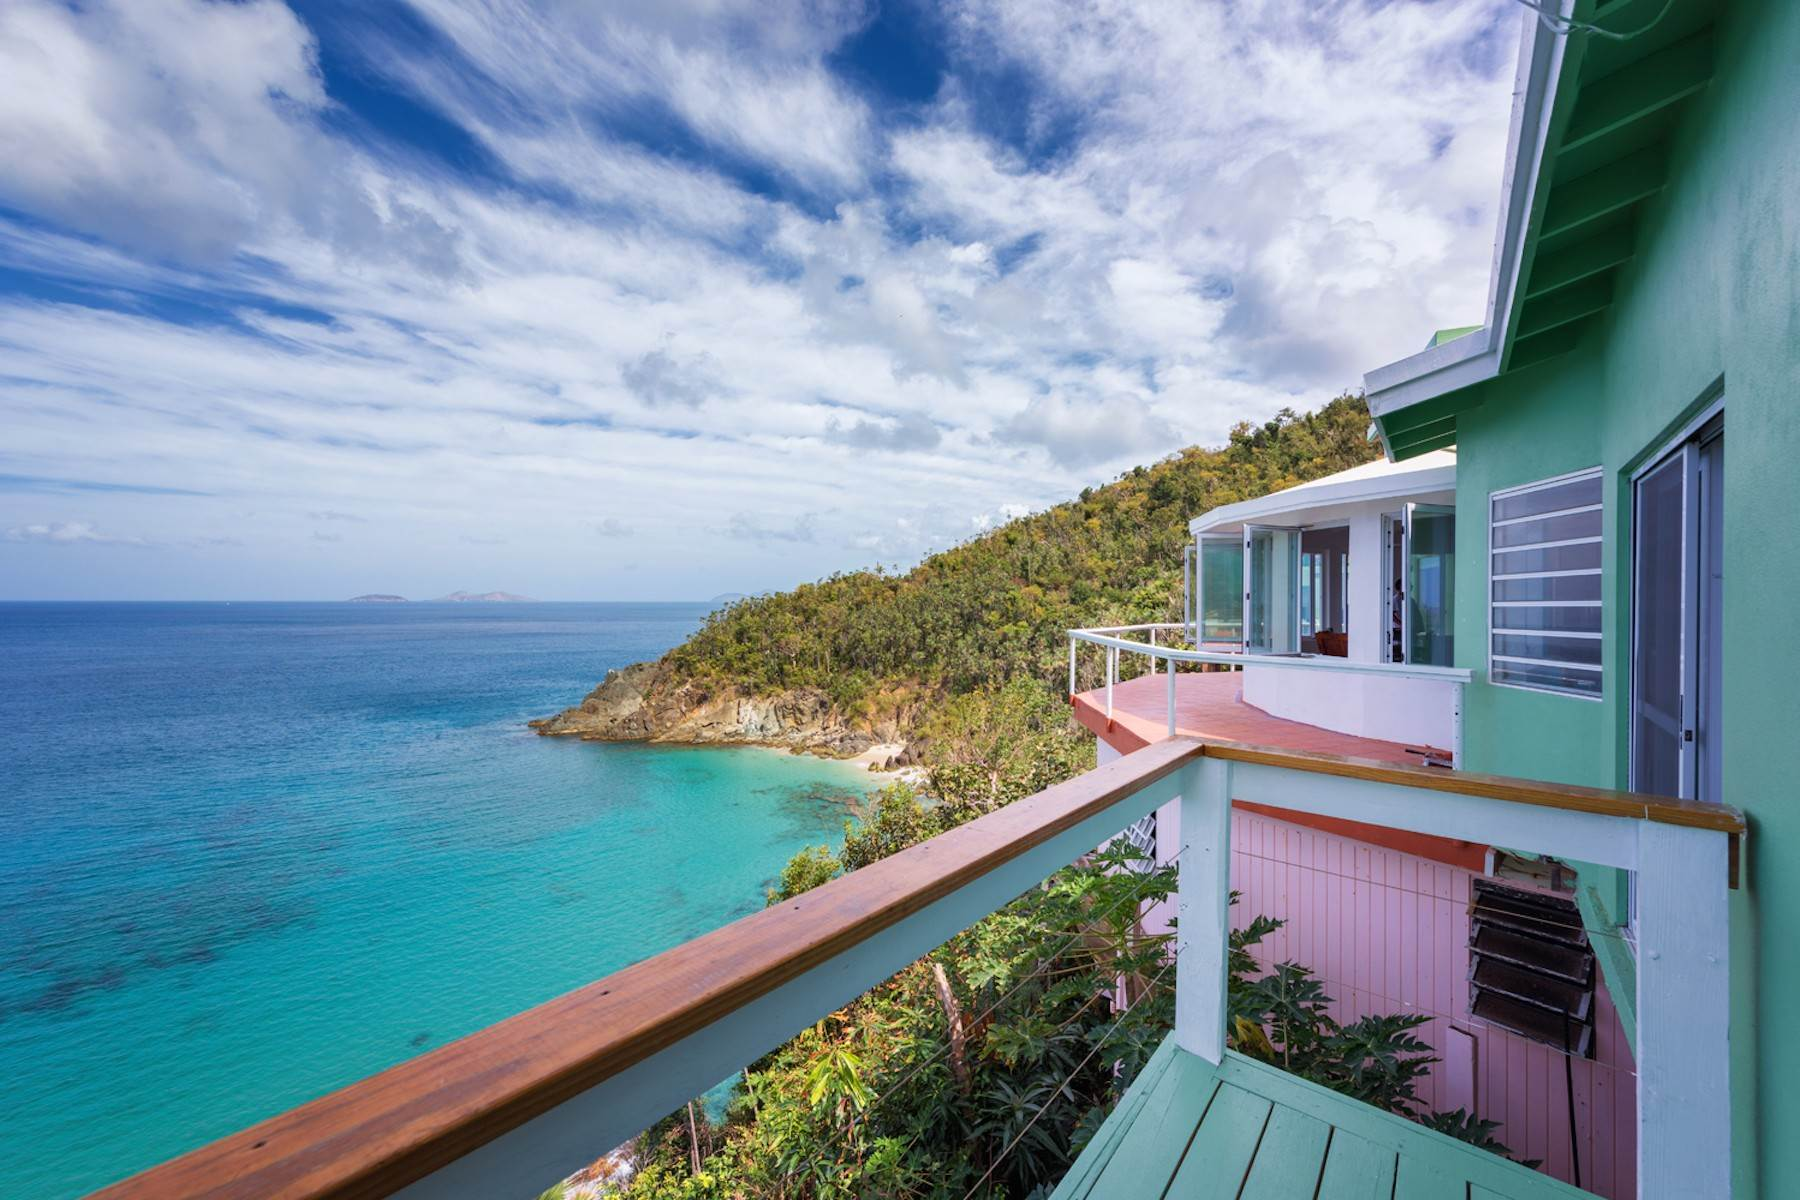 Single Family Homes for Sale at 4-44 Tabor & Harmony St Thomas, Virgin Islands 00802 United States Virgin Islands